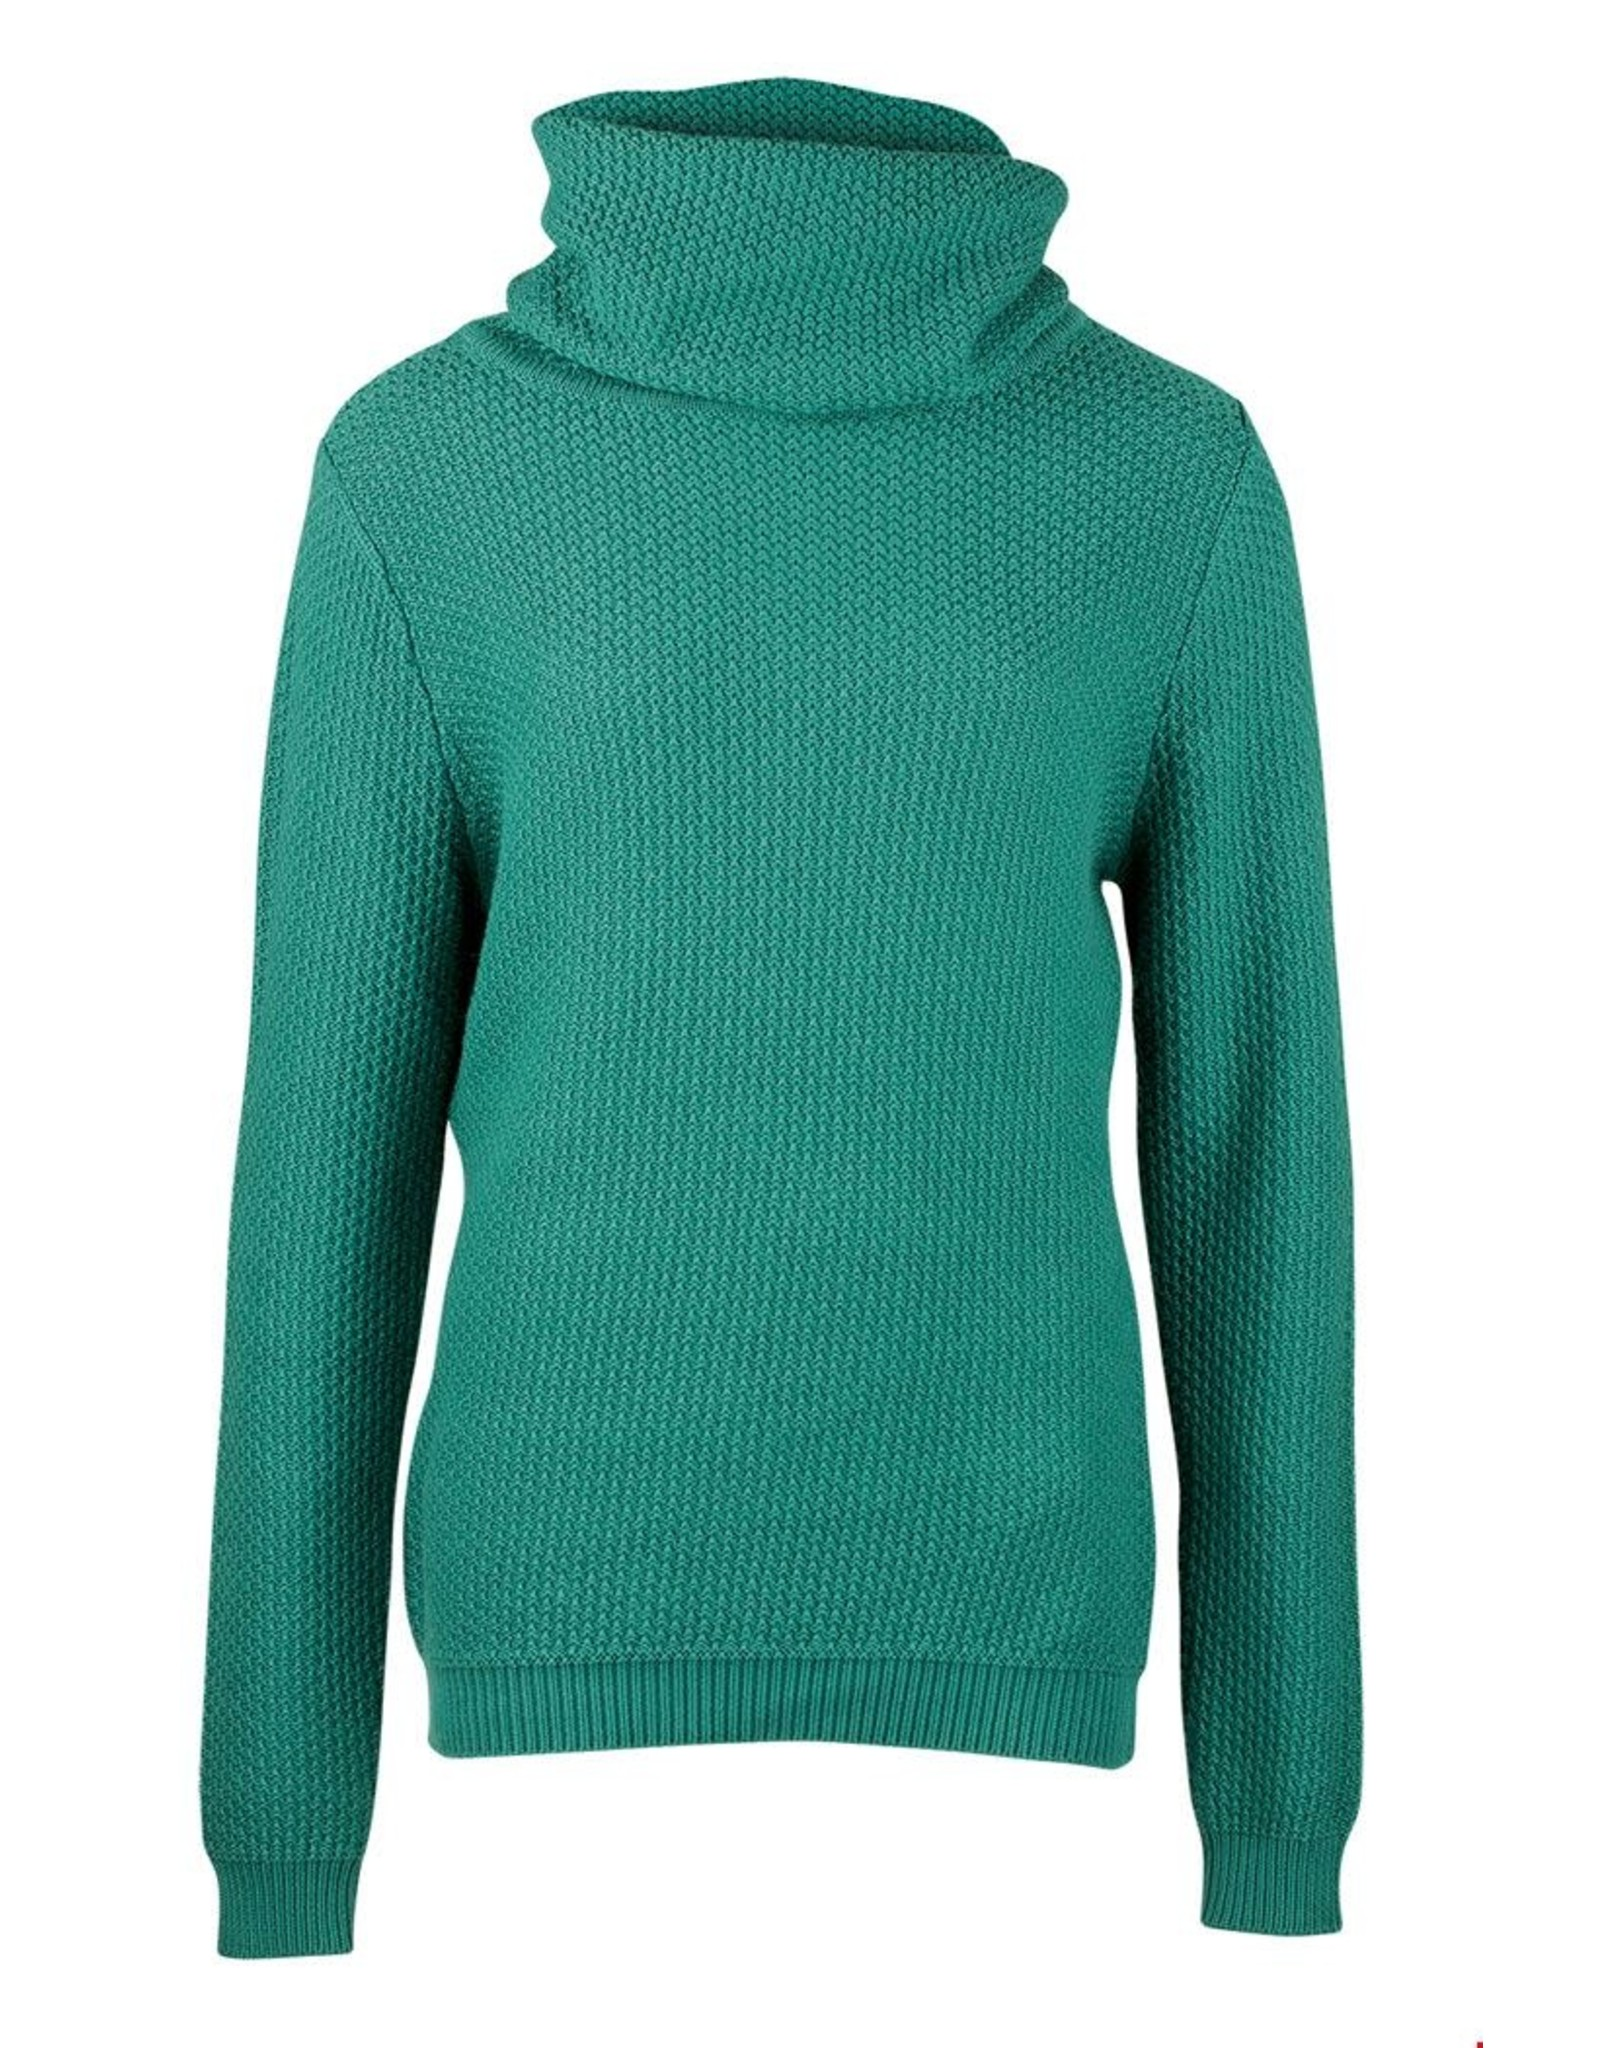 zilch Zilch sweater 02COT30.056 Petrol 074